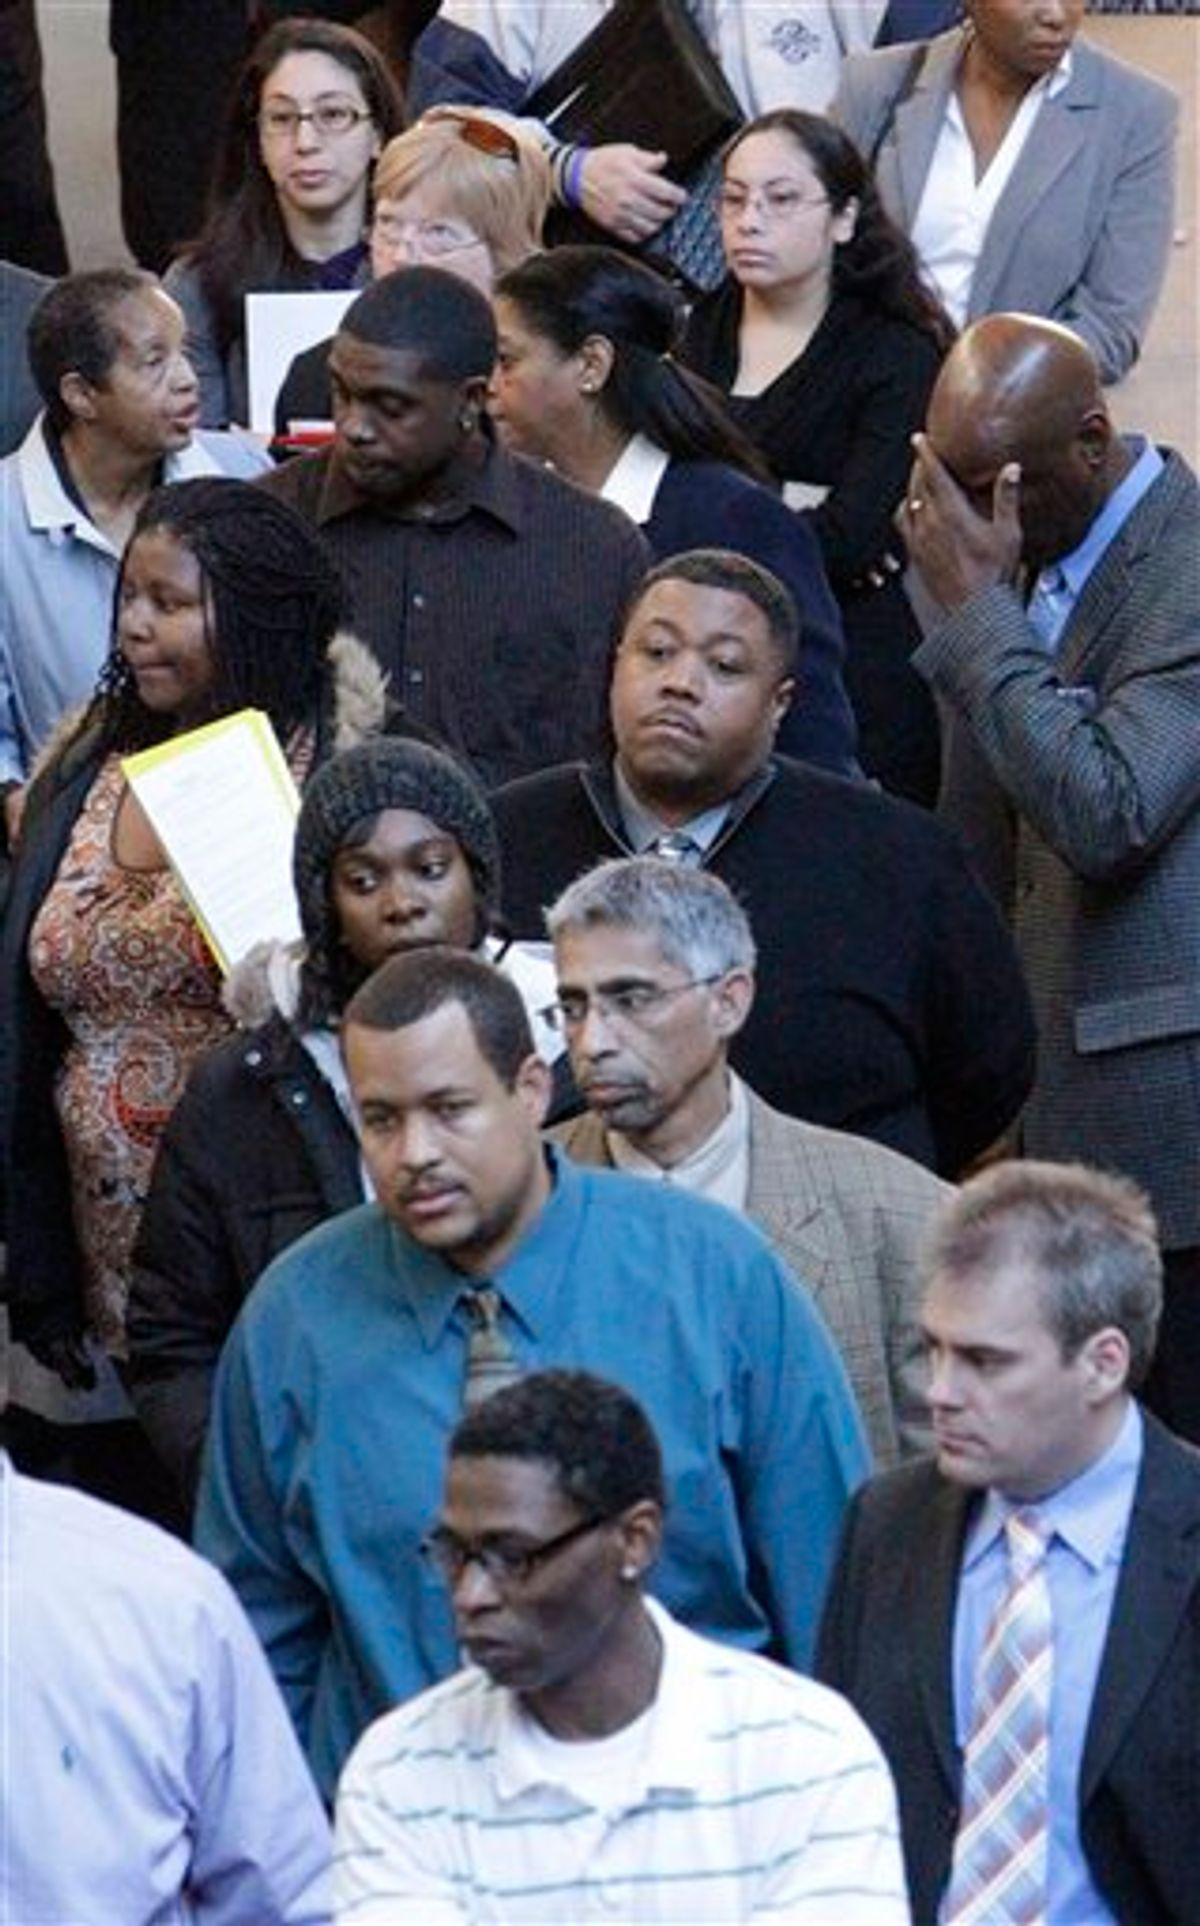 FILE - In this Jan. 26, 2011 file photo, job seekers line up for a job fair at a hotel in Dallas. The number of people applying for unemployment benefits fell last week, after bad weather contributed to a spike in the number of those seeking benefits the previous week. (AP Photo/LM Otero, file) (AP)